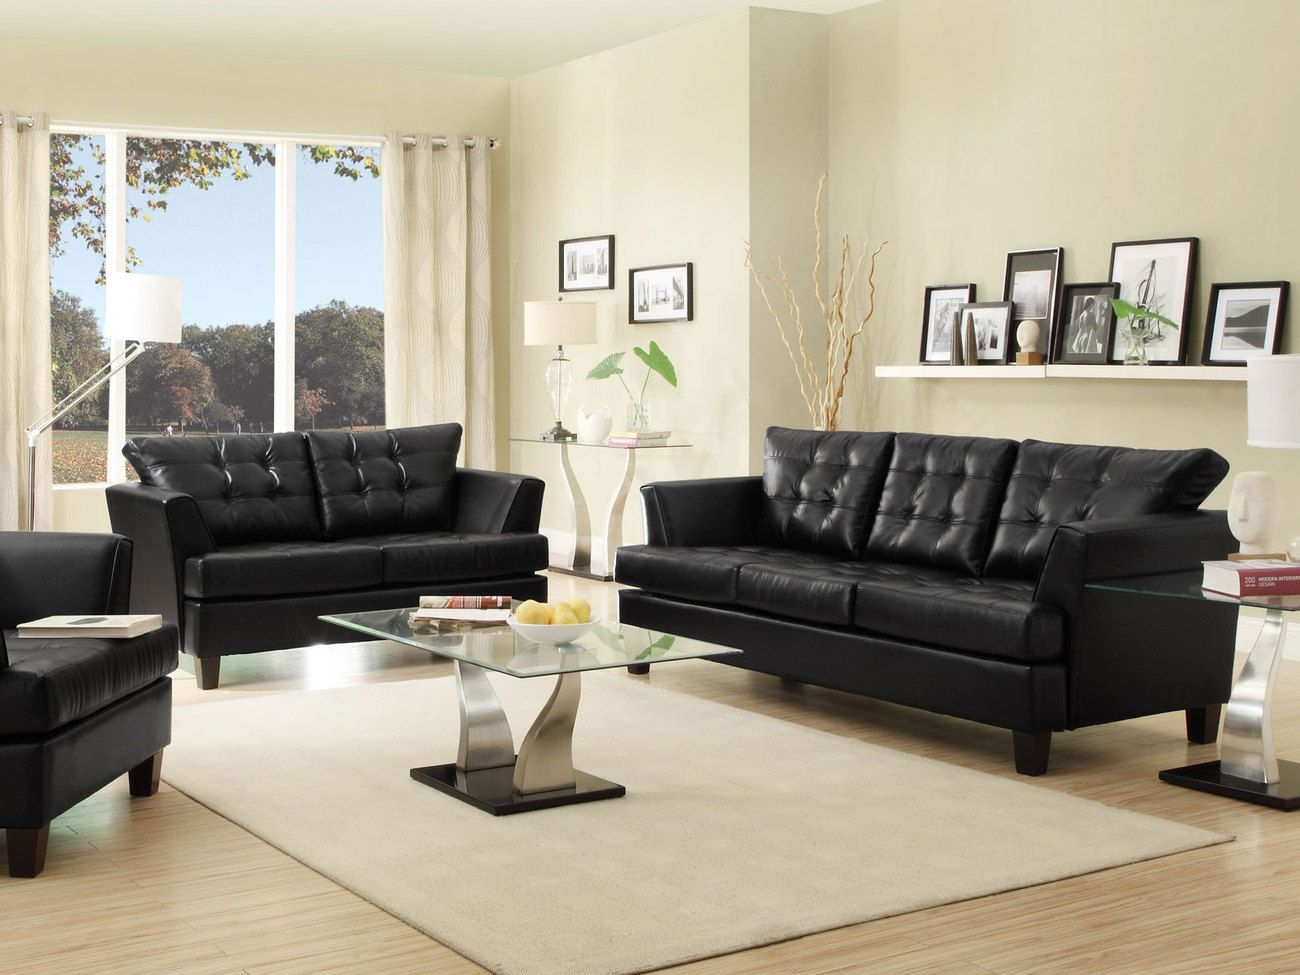 Living Room Decor With Black Leather Couches  Httptmidb Unique Black Leather Living Room Furniture Decorating Inspiration